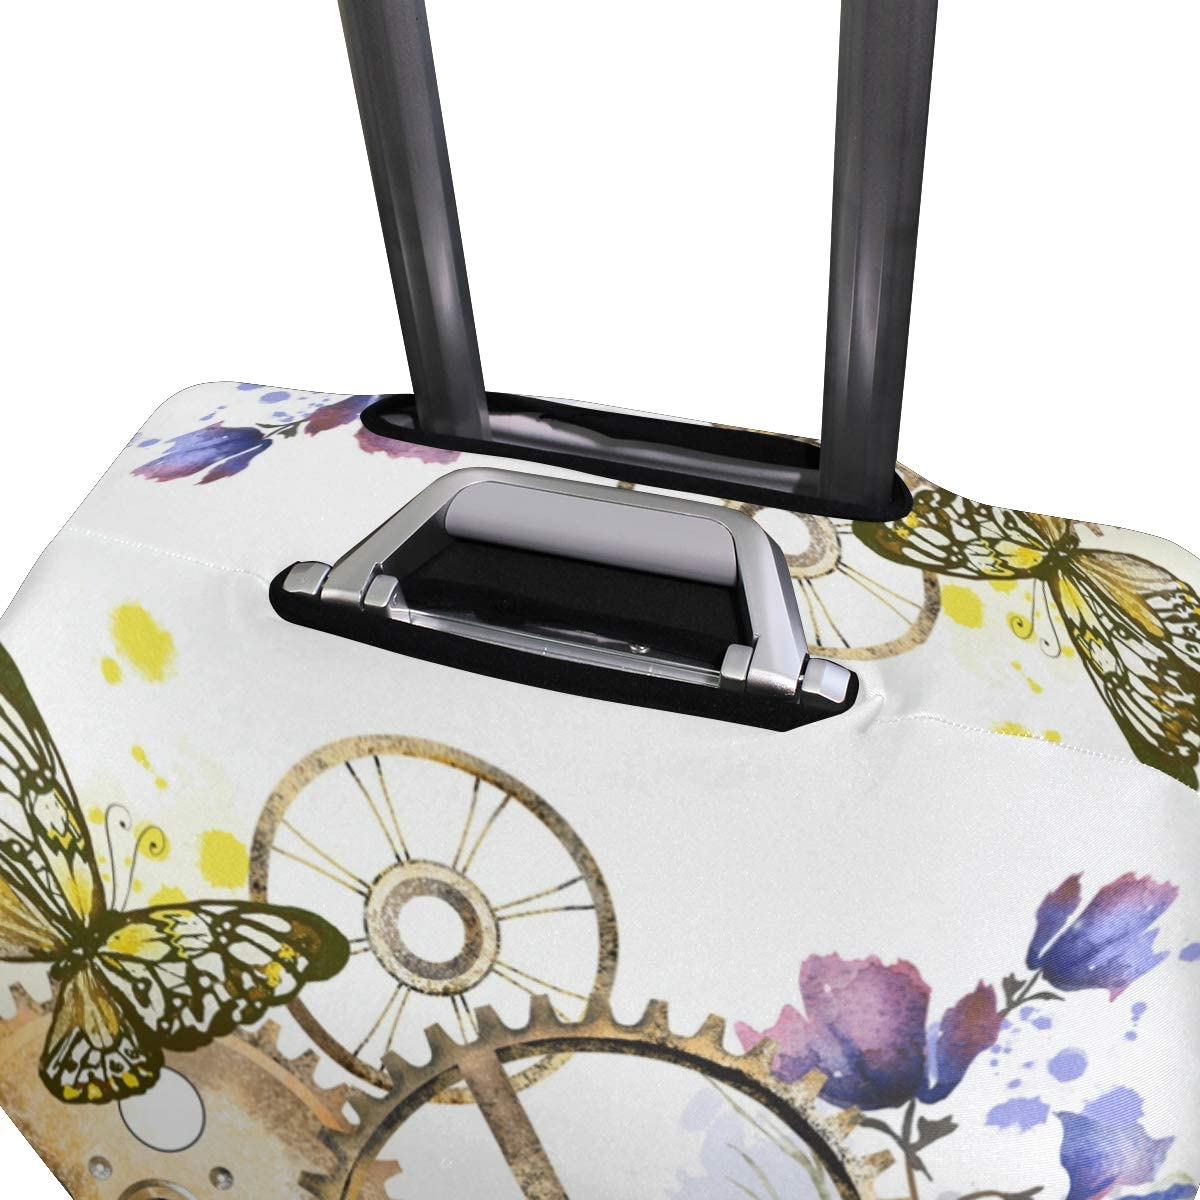 FOLPPLY Retro Butterly Clockworks Punk Floral Luggage Cover Baggage Suitcase Travel Protector Fit for 18-32 Inch